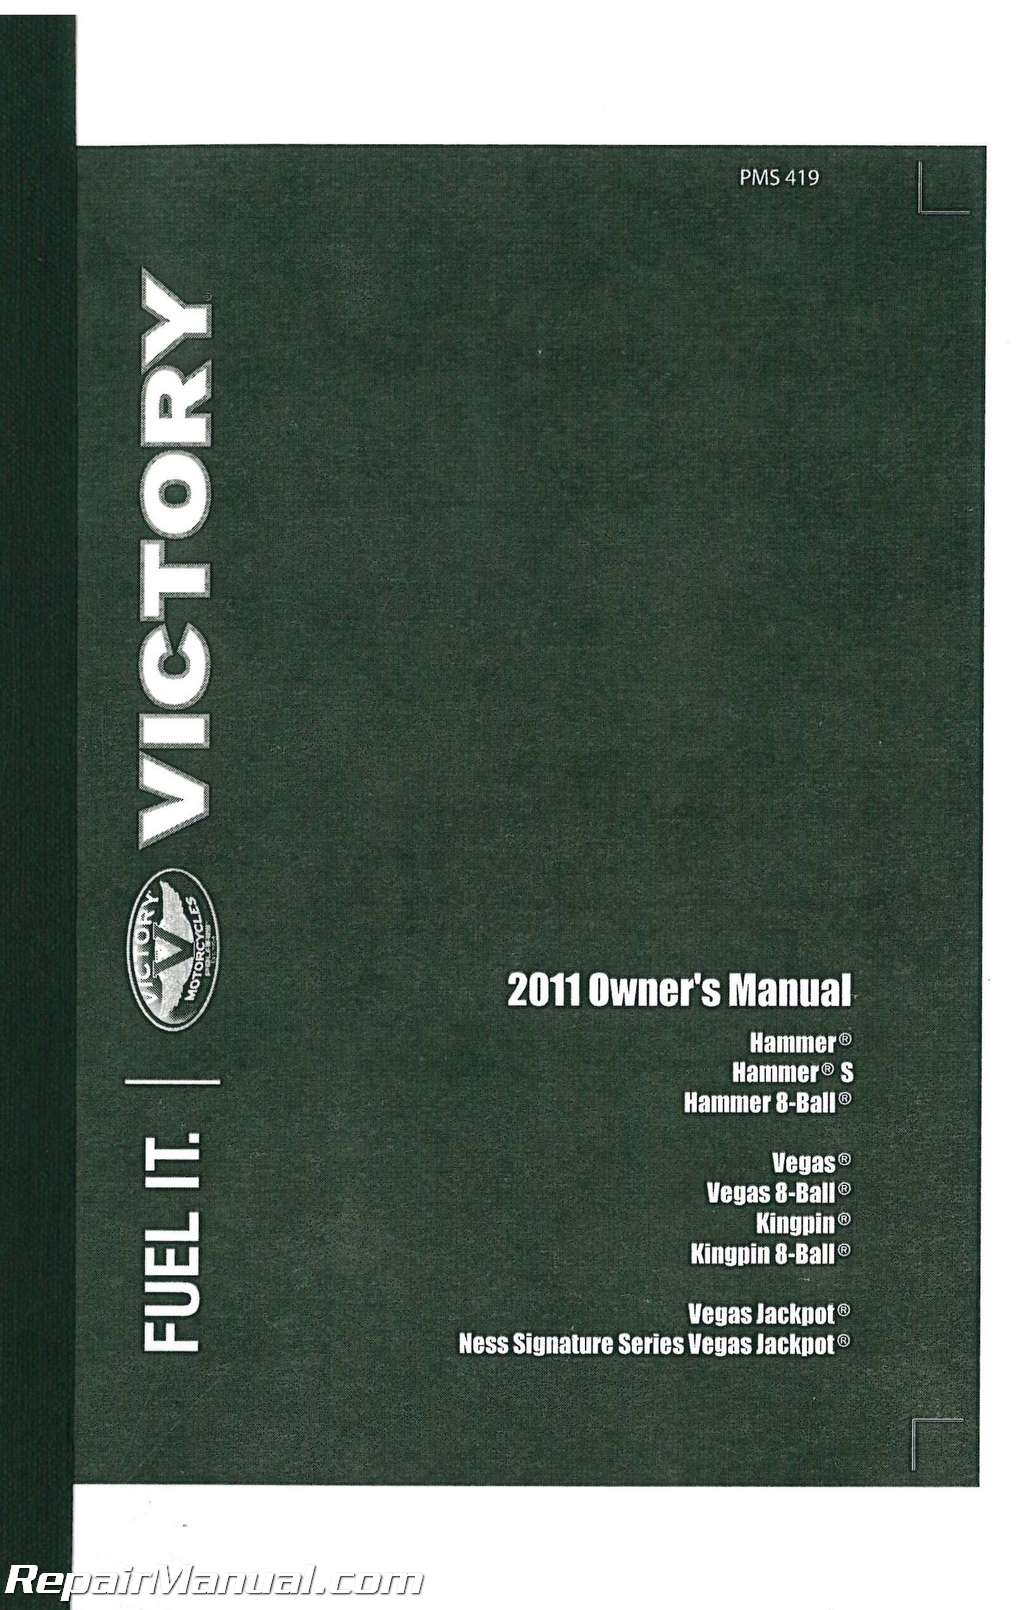 victory twister-30 user manual